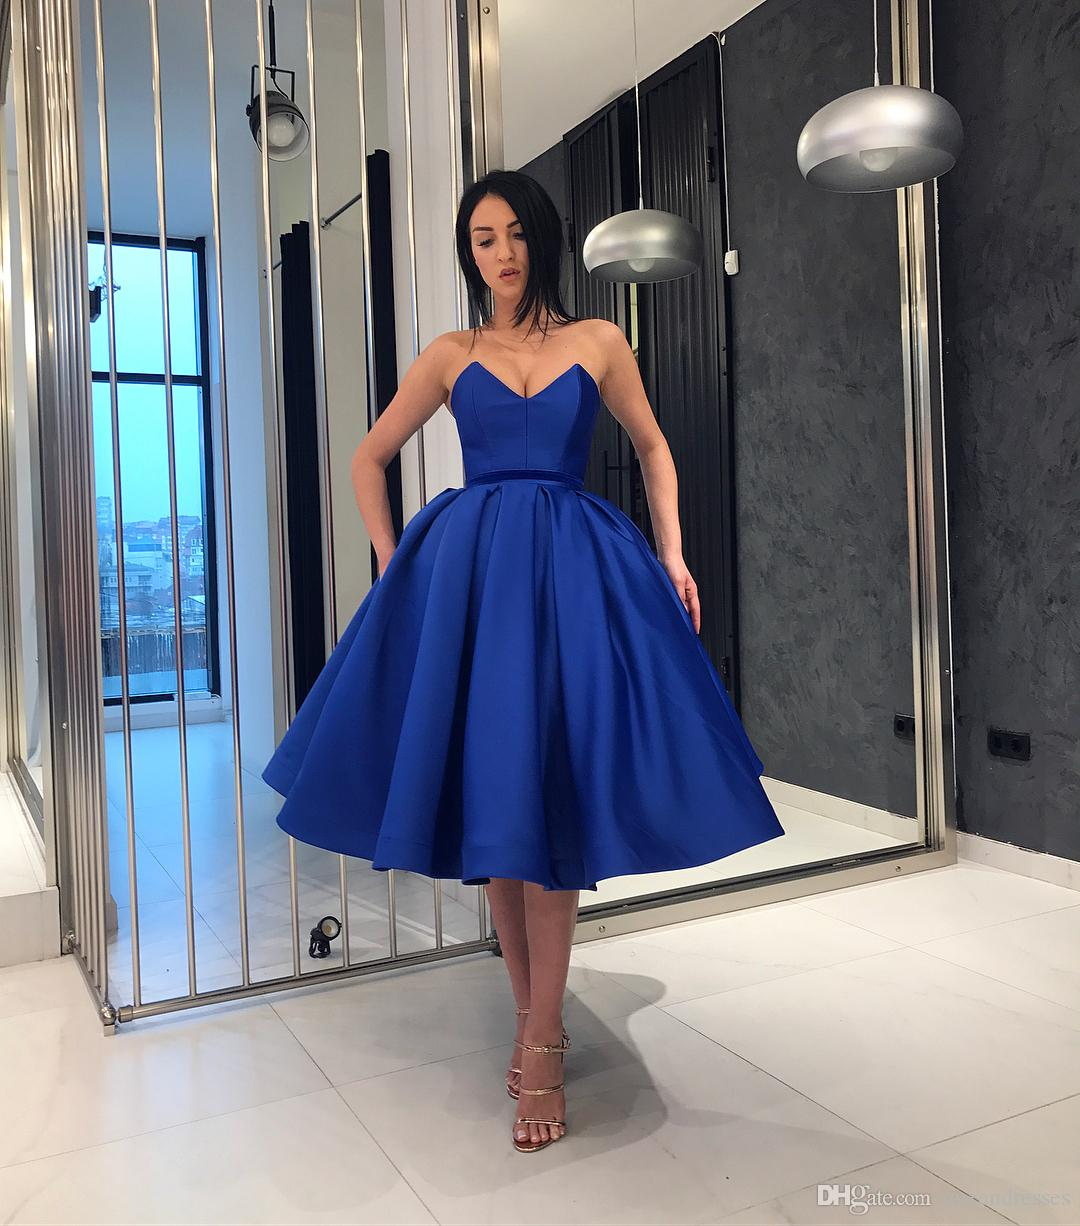 Simple Short Cocktail Dresses Royal Blue Satin A Line Knee Length Evening  Gowns Formal Women Special Occasion Homecoming Party Dresses Modest Cocktail  ... a2773ee1e77e